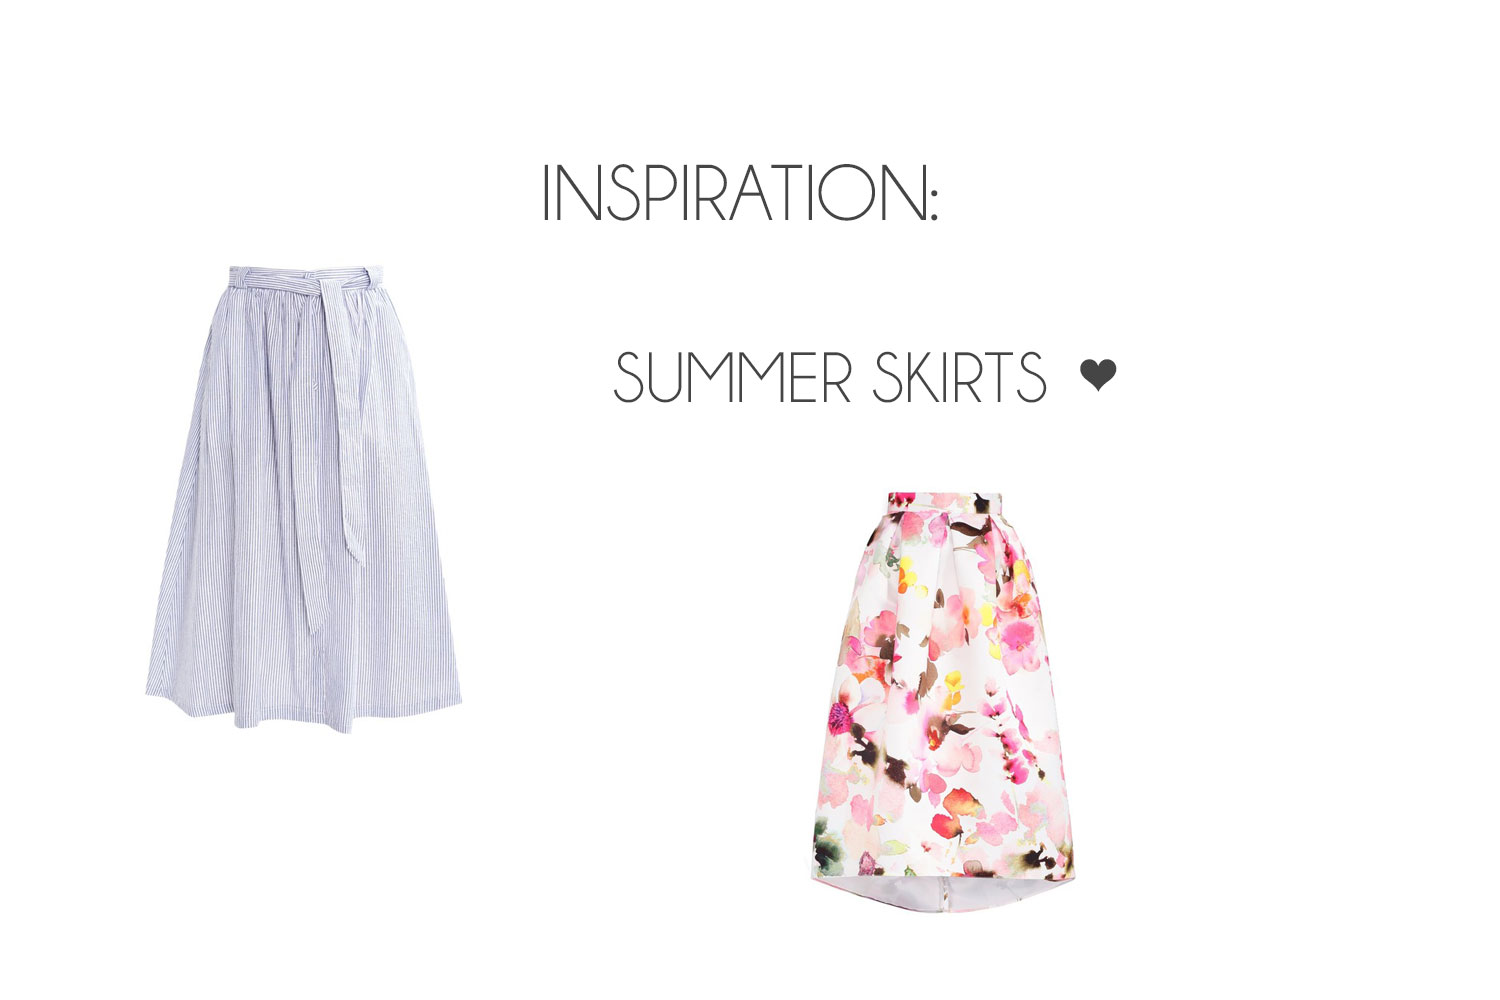 Outfit: Codello Original Dumbo Scarf & winactie // Munich - Summer skirts